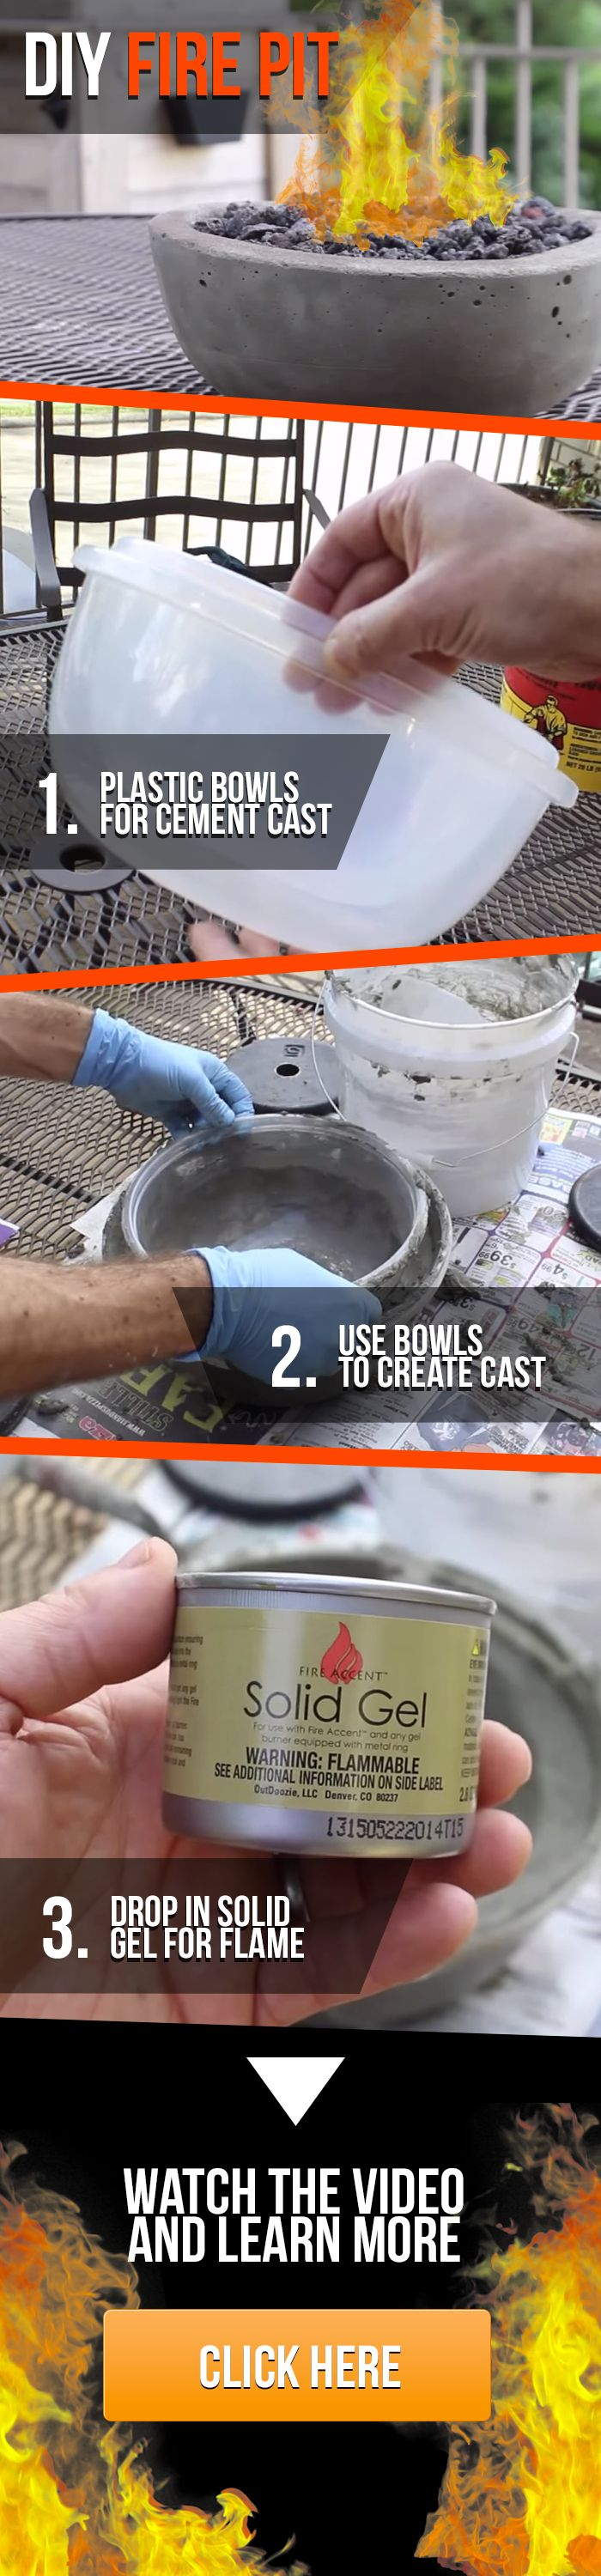 DIY Gel Fire Pits -- This is the perfect DIY project to get the summer started! This DIY fire pit is one of the easiest and frugal backyard ideas you will find.